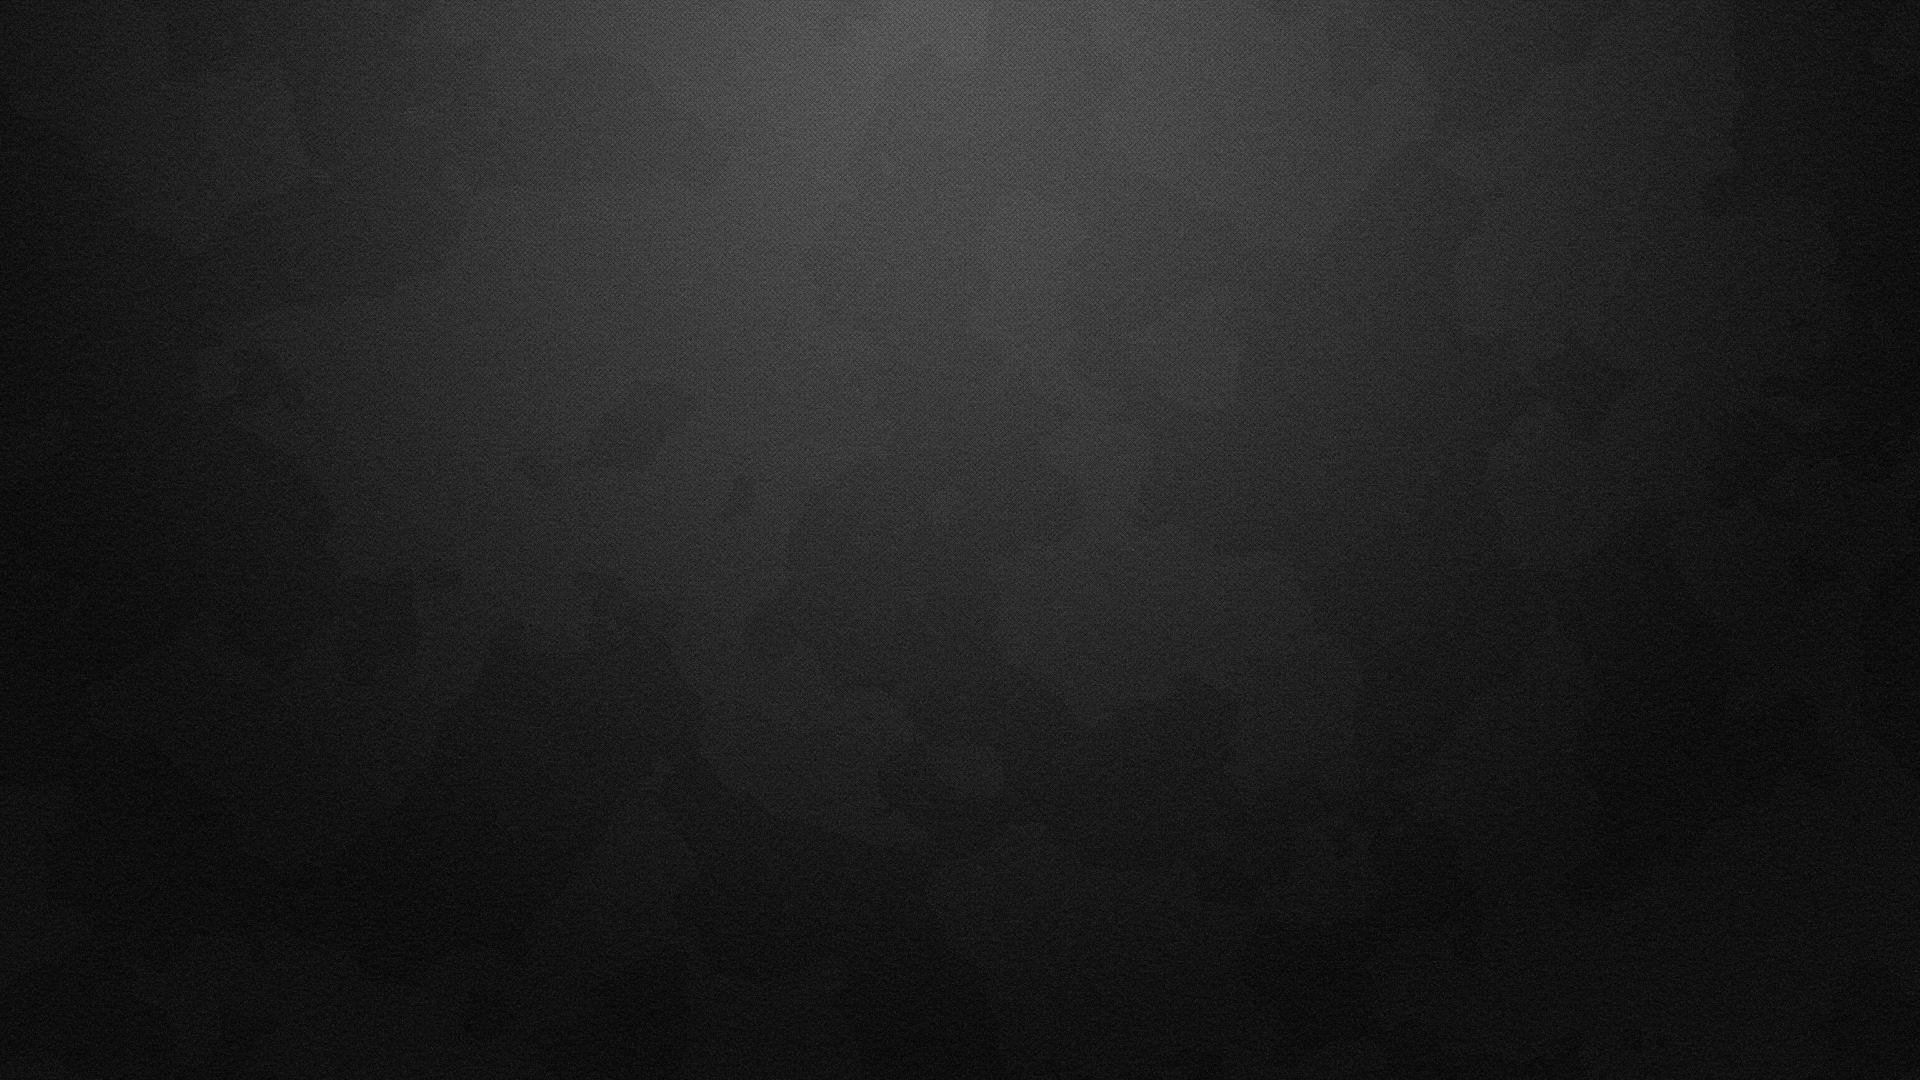 textured wallpaper grey optimus original artwork 1920x1080 1920x1080